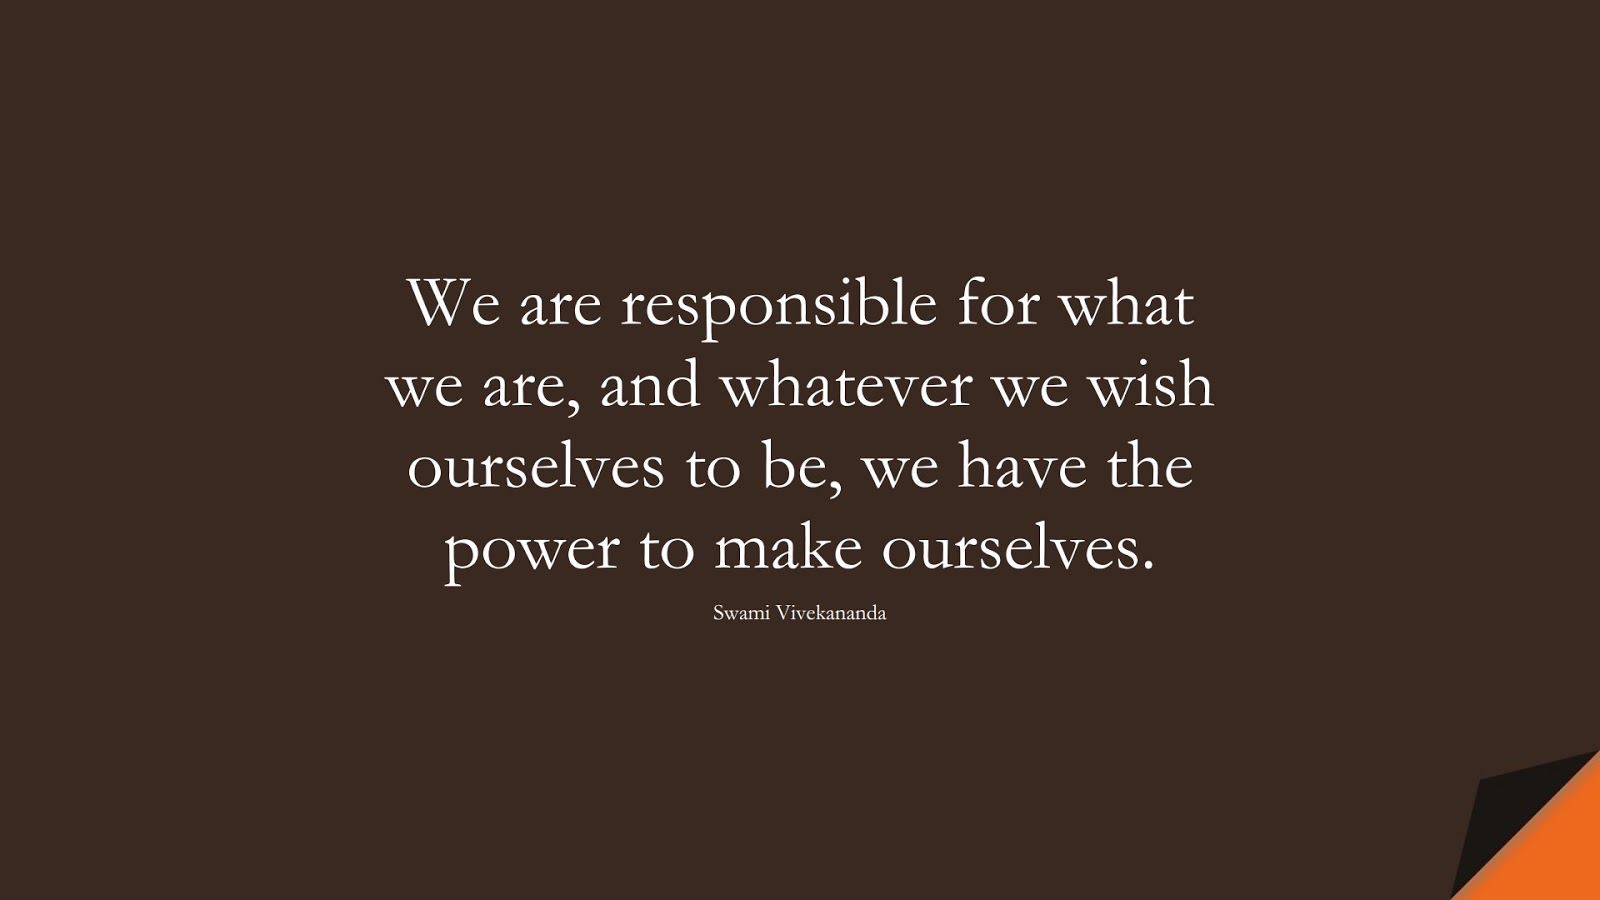 We are responsible for what we are, and whatever we wish ourselves to be, we have the power to make ourselves. (Swami Vivekananda);  #PositiveQuotes